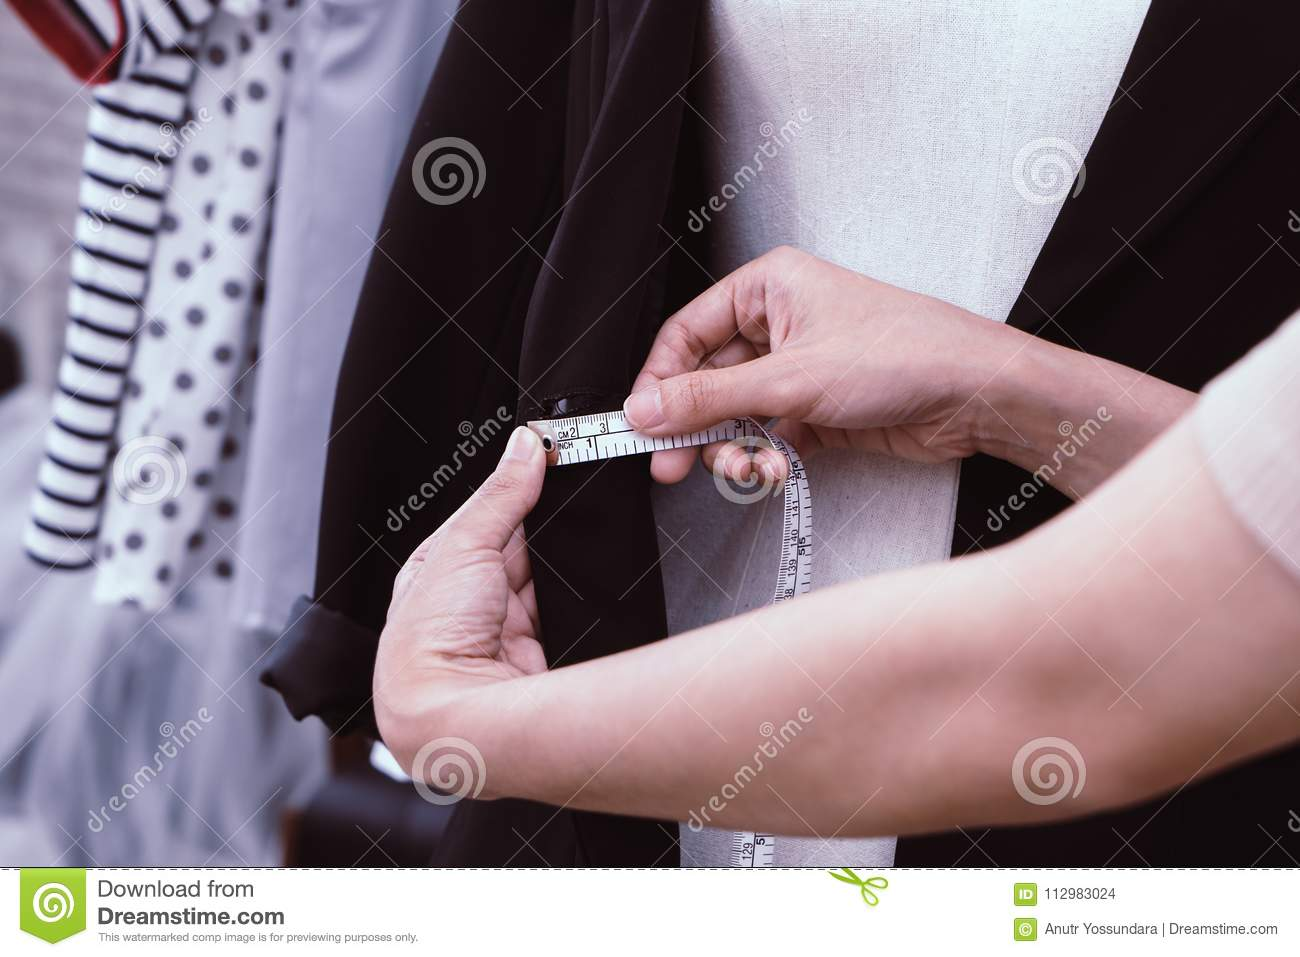 Fashion Designer hand measuring clothes with measuring tape